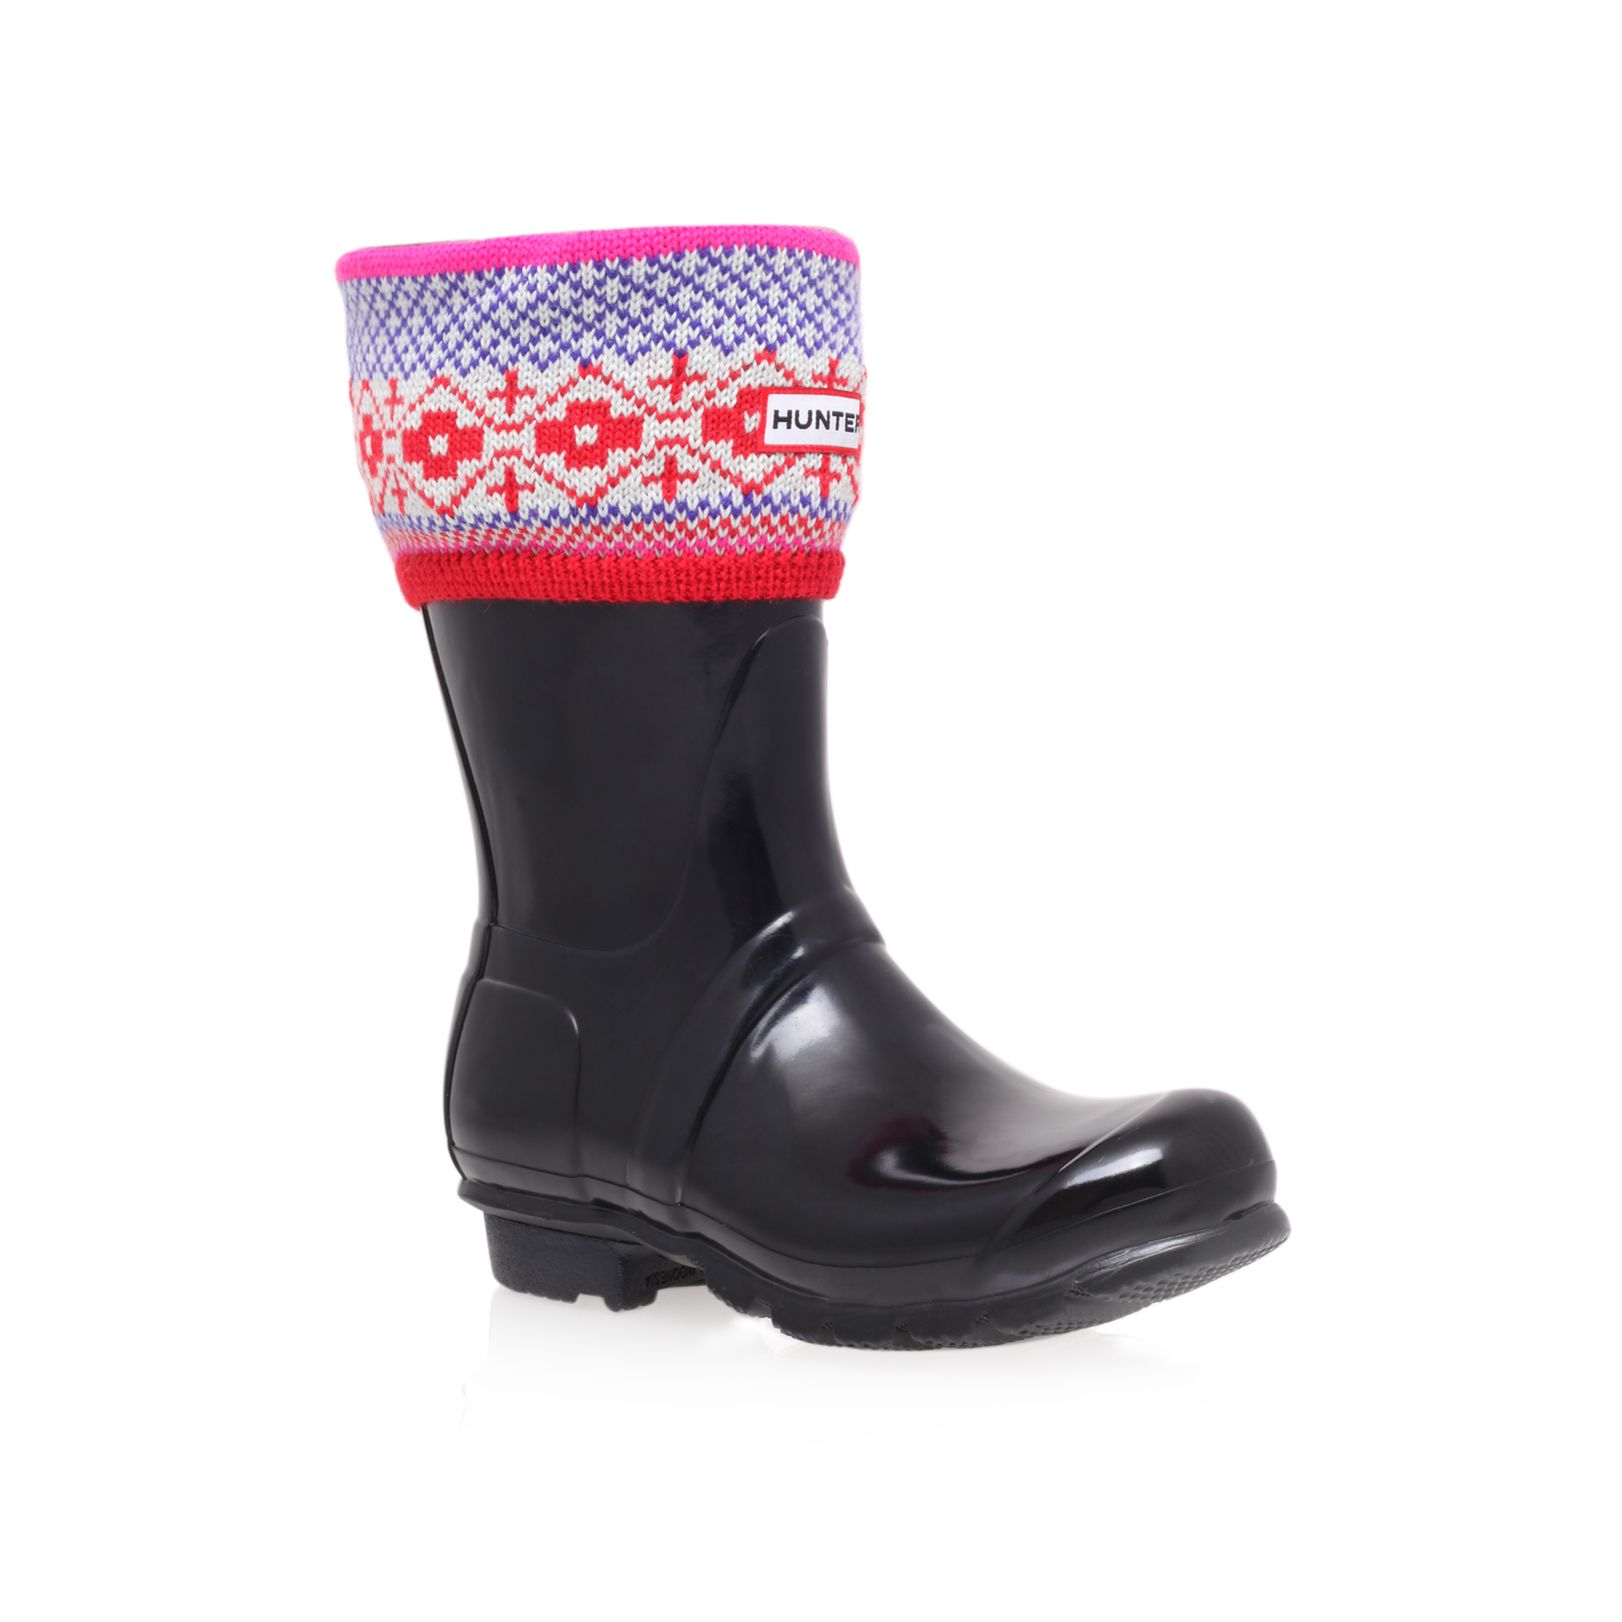 Fairisle cuff boot socks